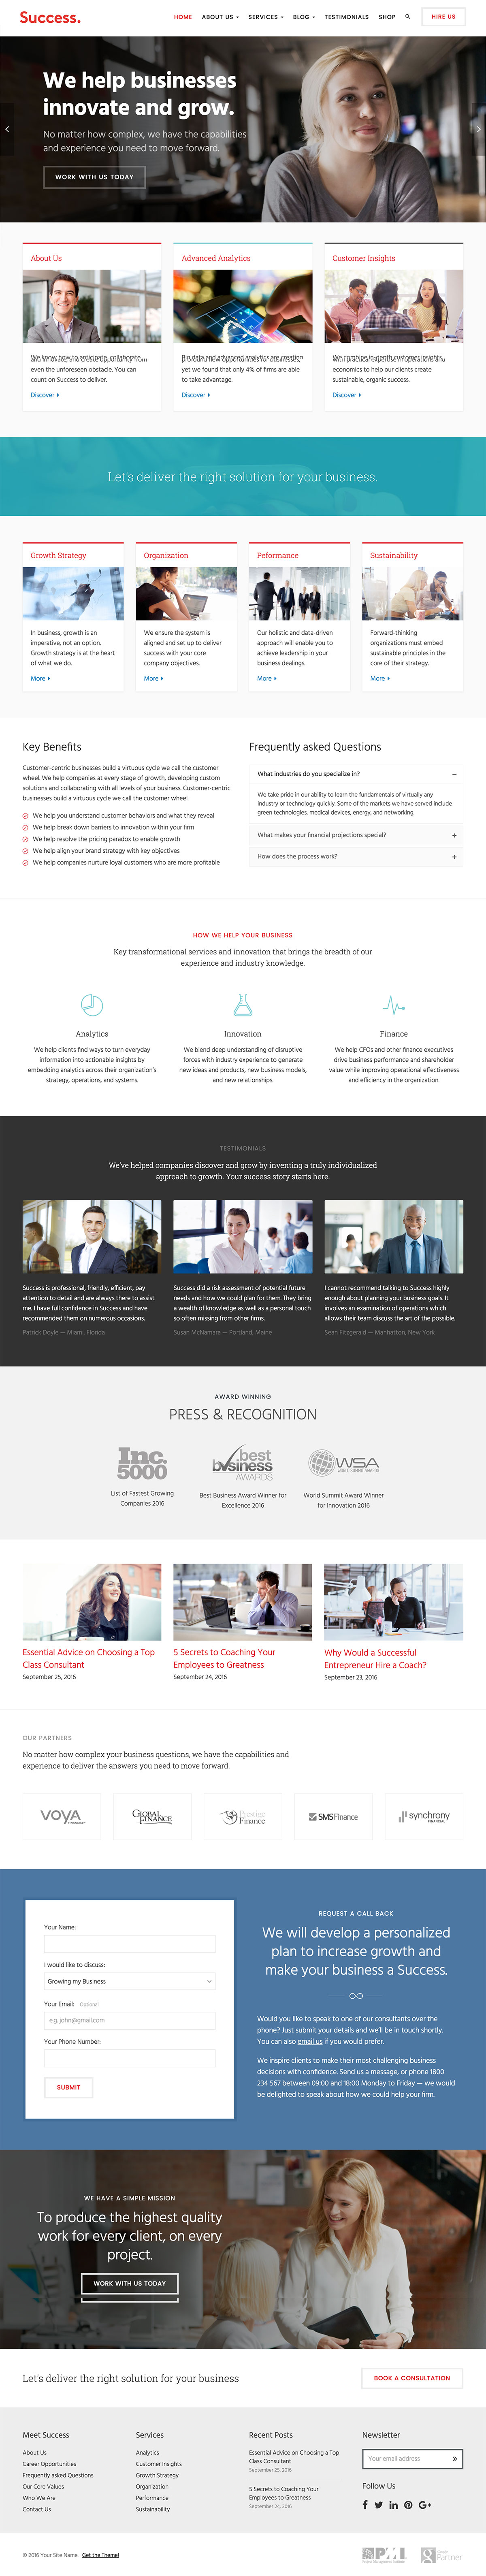 Success - Business and Professional Services WordPress Theme